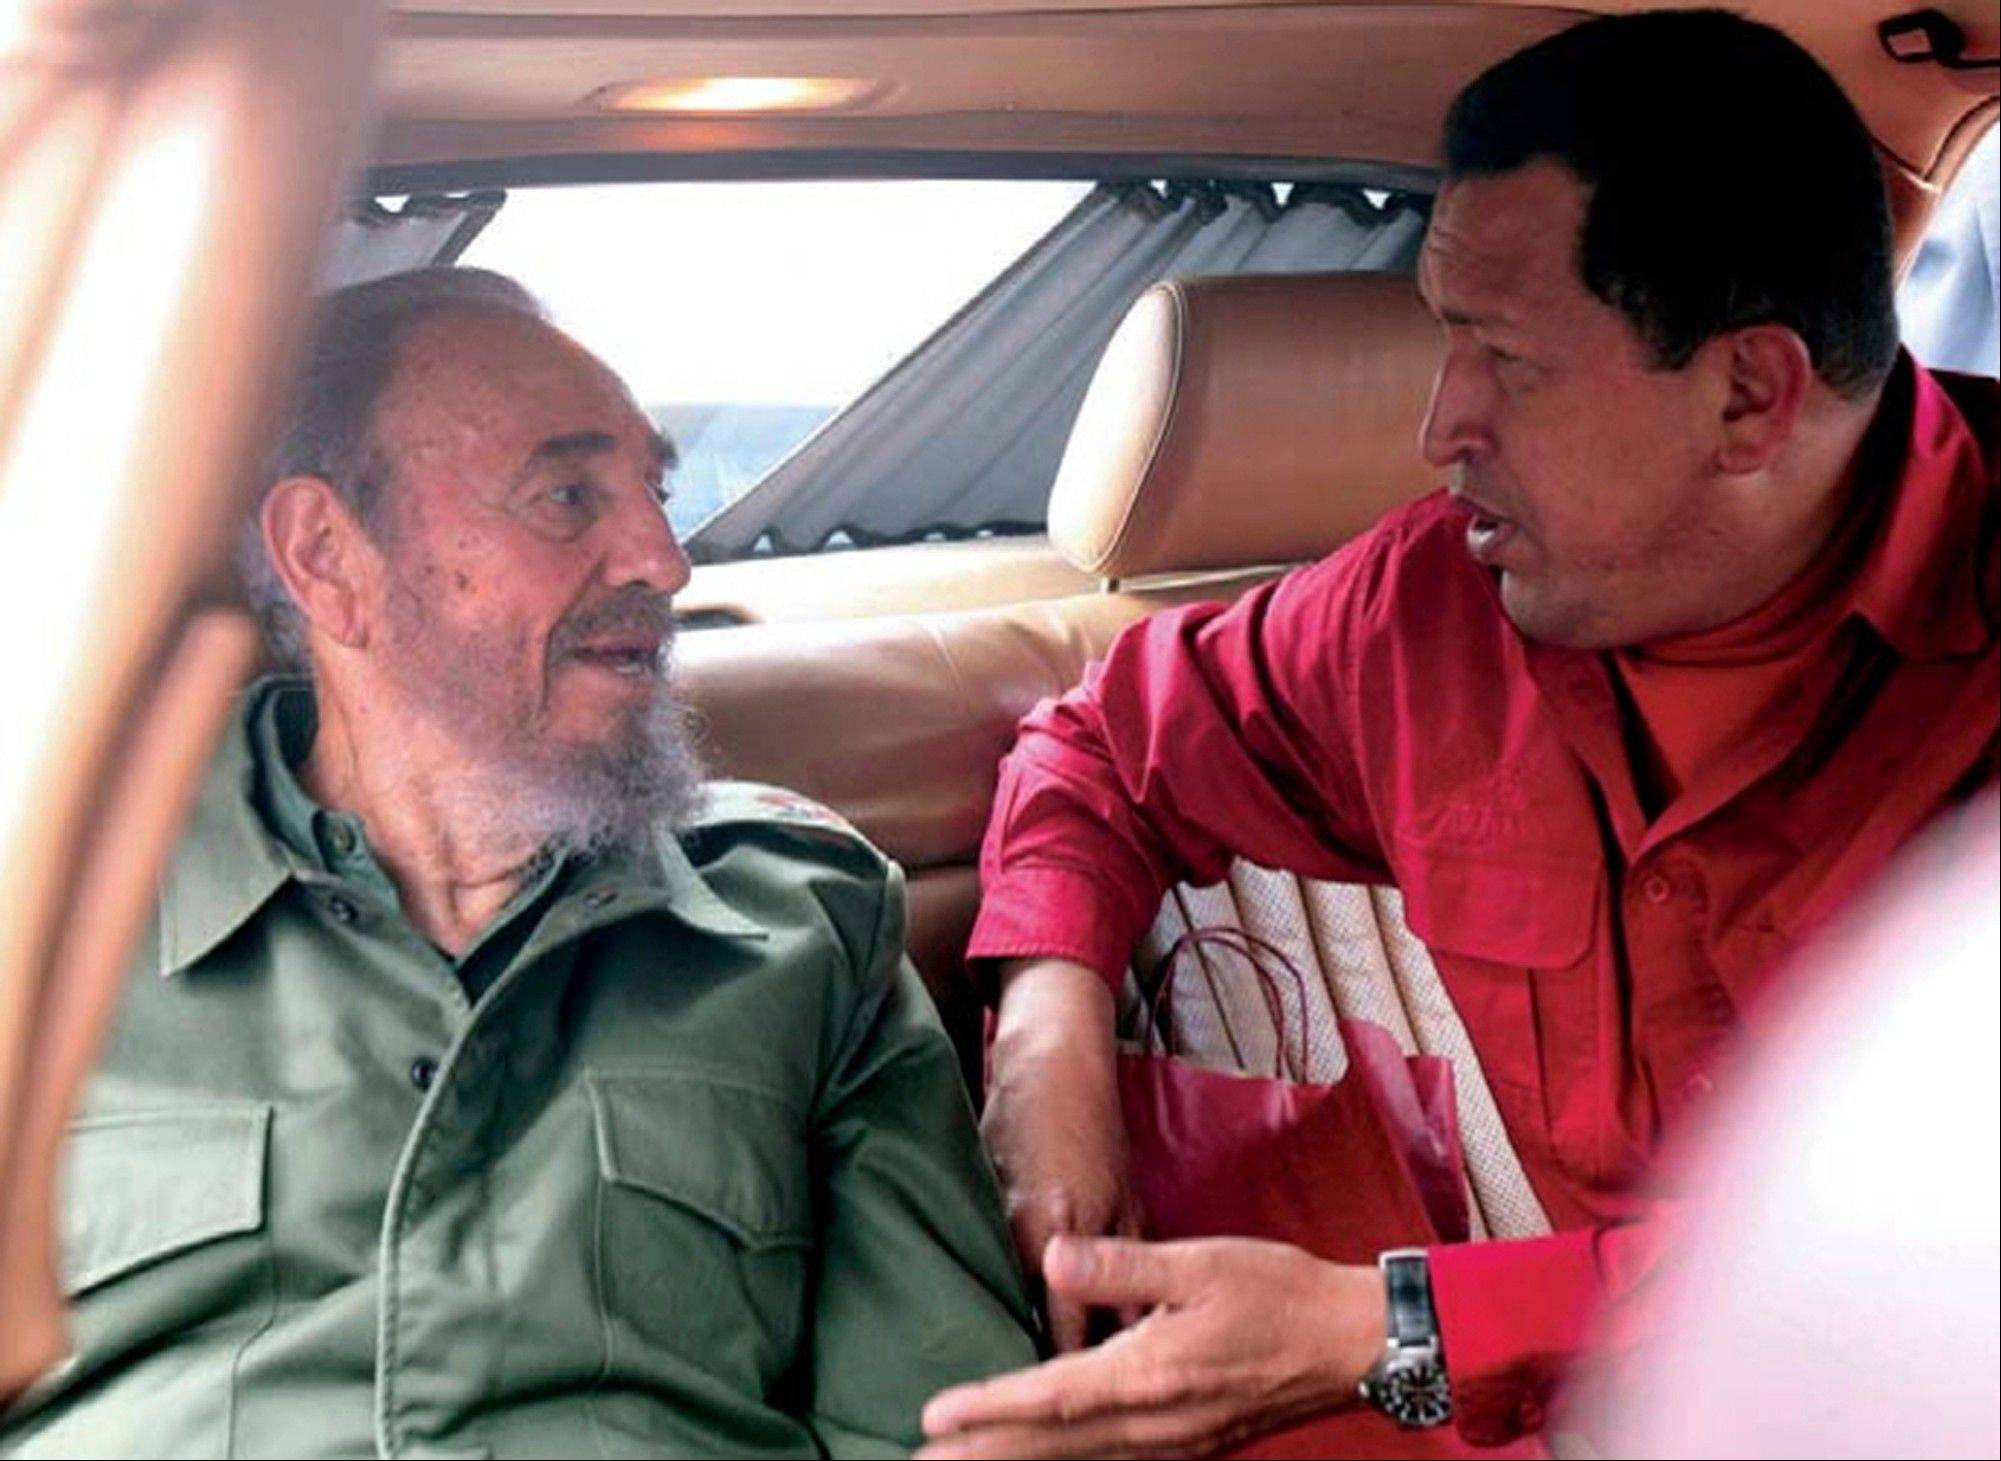 In this July 22, 2006 photo released by Miraflores Press Office, Venezuela�s President Hugo Chavez , right, speak with Cuba�s Fidel Castro during their visit to the home of Cuban revolutionary Ernesto �Che� Guevara in Cordoba, Argentina.